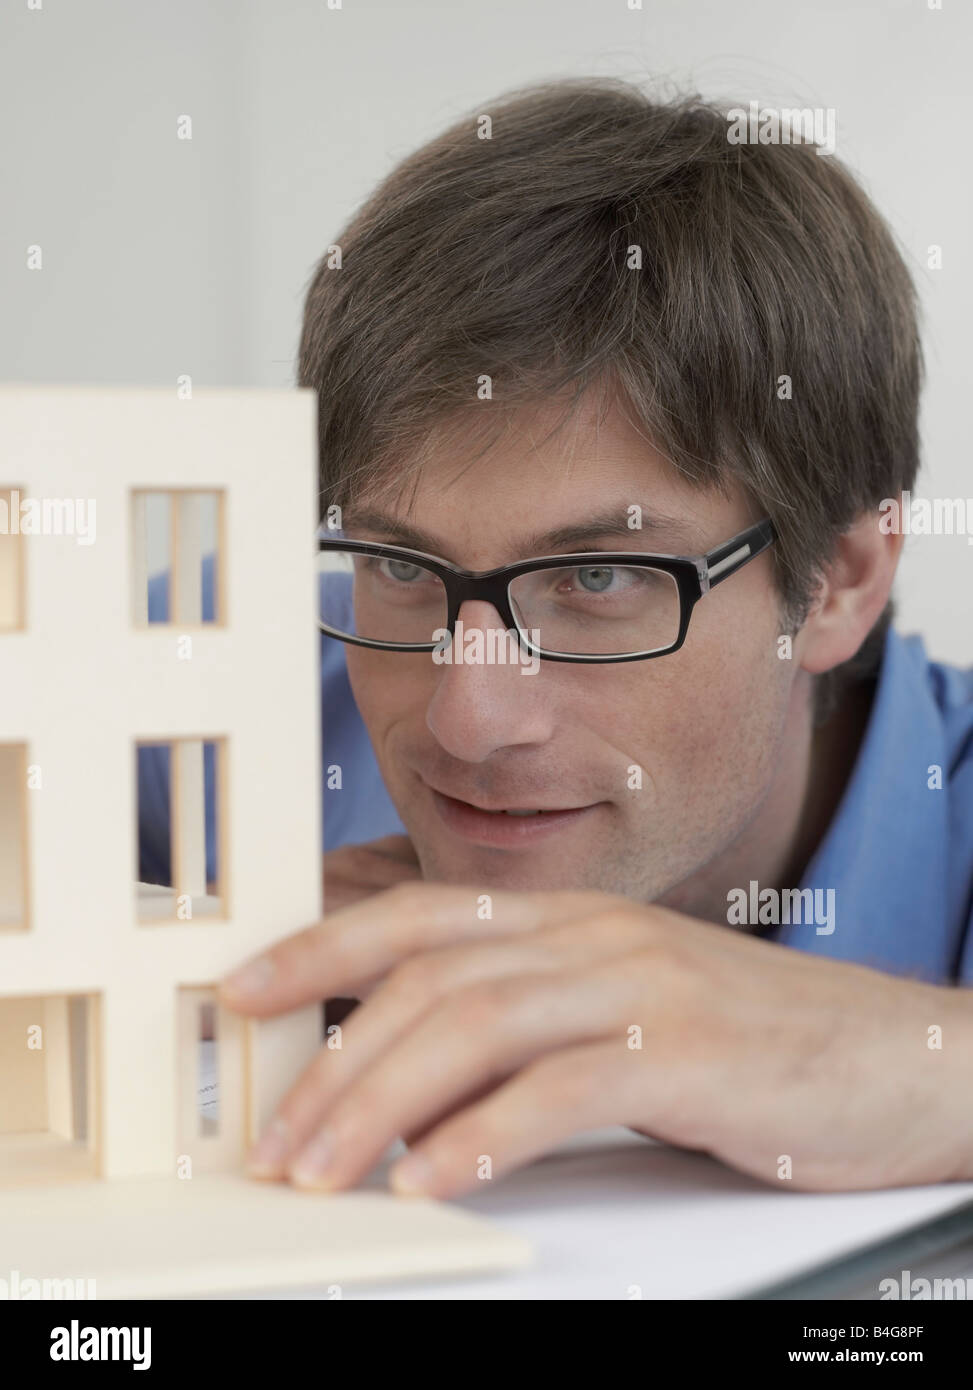 An architect examining an architectural model - Stock Image